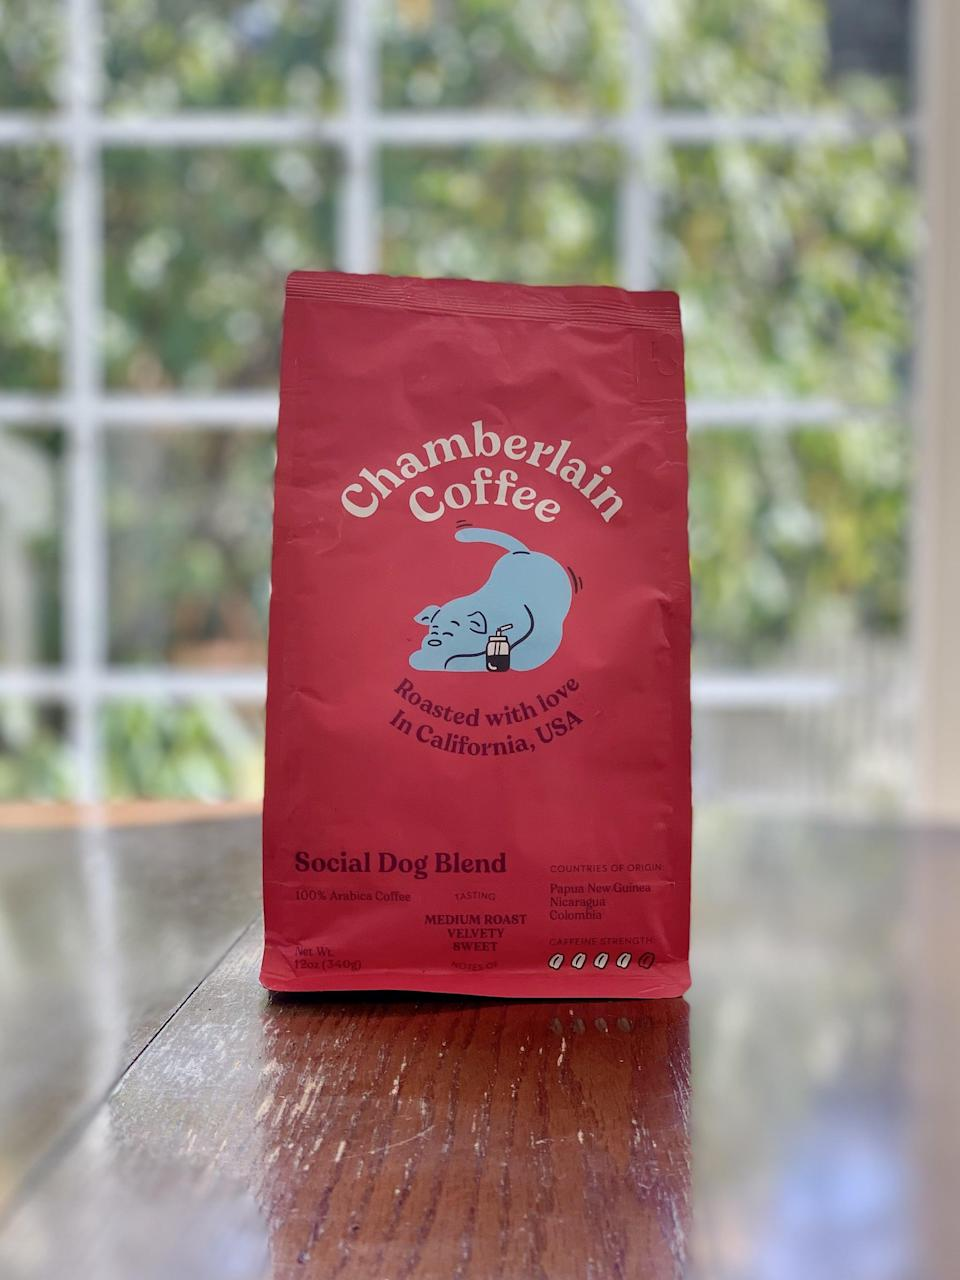 "<p><strong>Basic info:</strong> Medium roast described as ""velvety"" and ""sweet.""</p> <p>French roast is your favorite coffee? The <a href=""https://chamberlaincoffee.com/products/social-dog-blend"" class=""link rapid-noclick-resp"" rel=""nofollow noopener"" target=""_blank"" data-ylk=""slk:Social Dog Blend"">Social Dog Blend</a> is the closest match, as far as I can tell. We drink french roast every day, and this was very similar to my morning cup. I was surprised to find out that this blend has ""a graham cracker finish"" - is that why I loved it so much?!</p>"